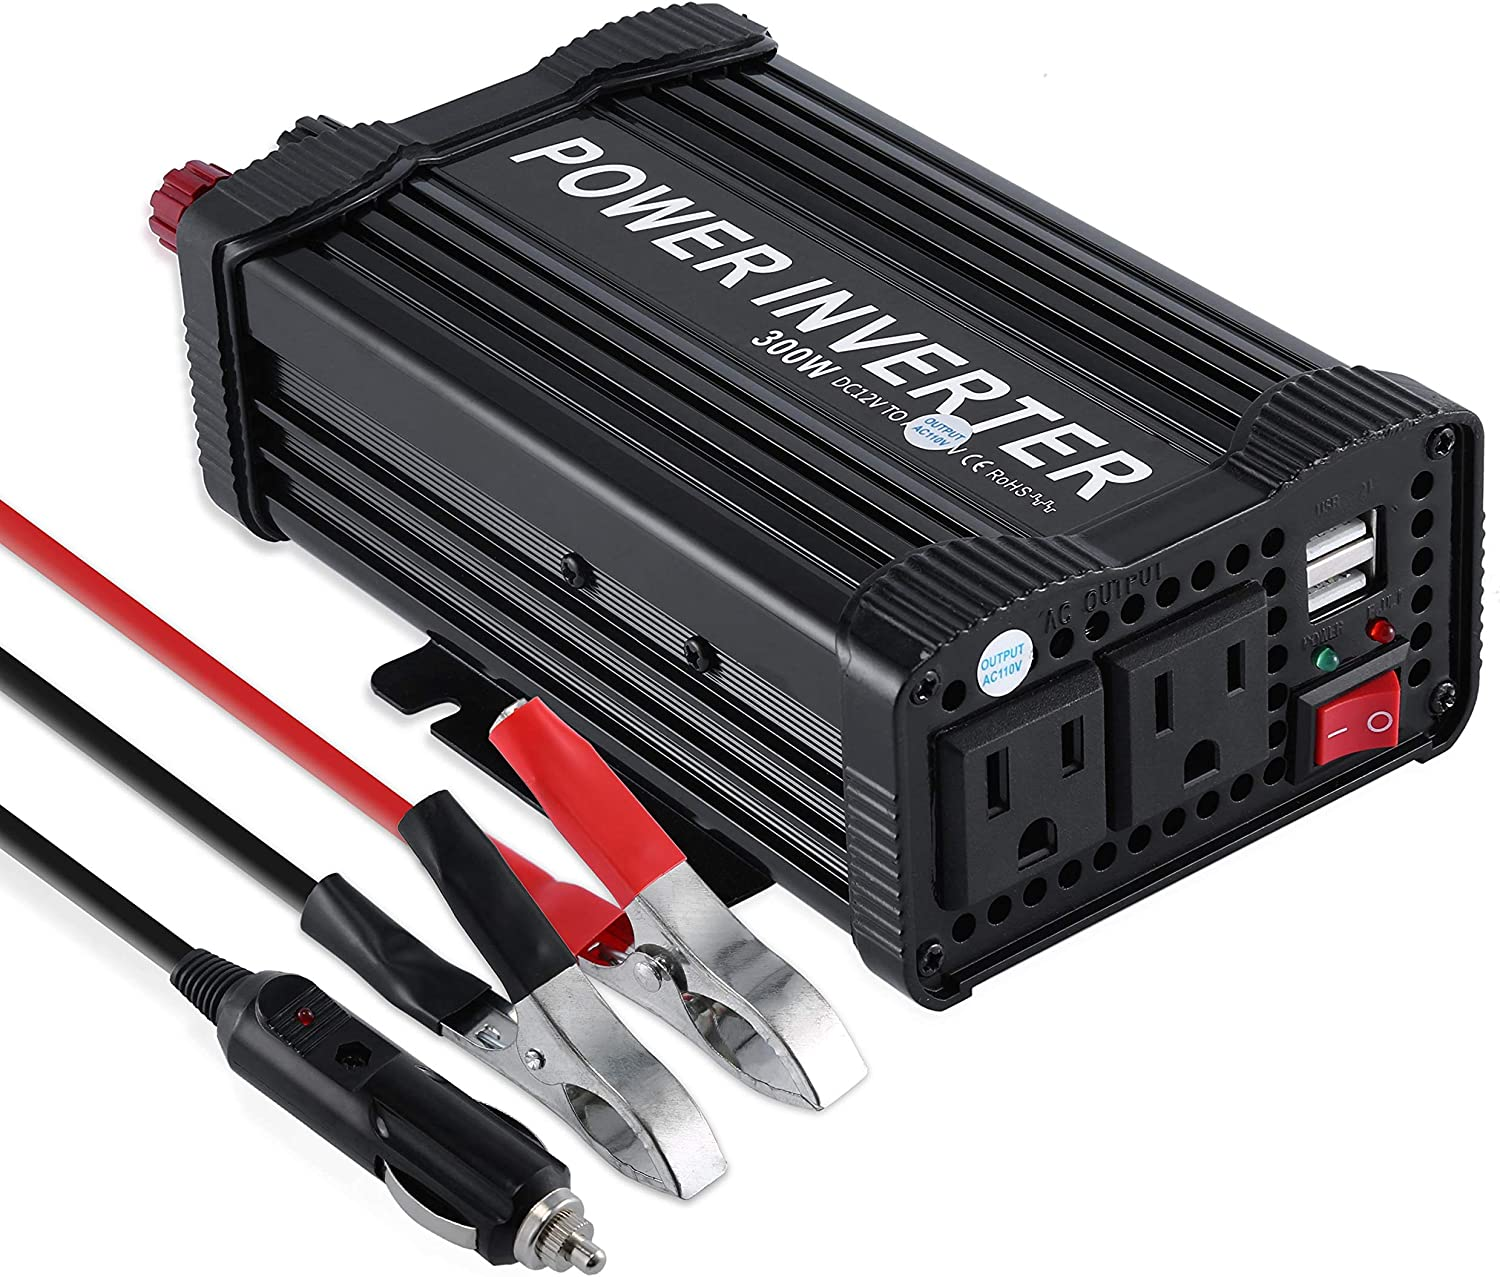 OHMOTOR 300W Power Inverter DC 12V to 110V AC Modified Sine Wave Car Inverter,with Dual 2.1A USB Ports and US Sockets Suit for iPad,Phone,Tablet,Laptop 300W